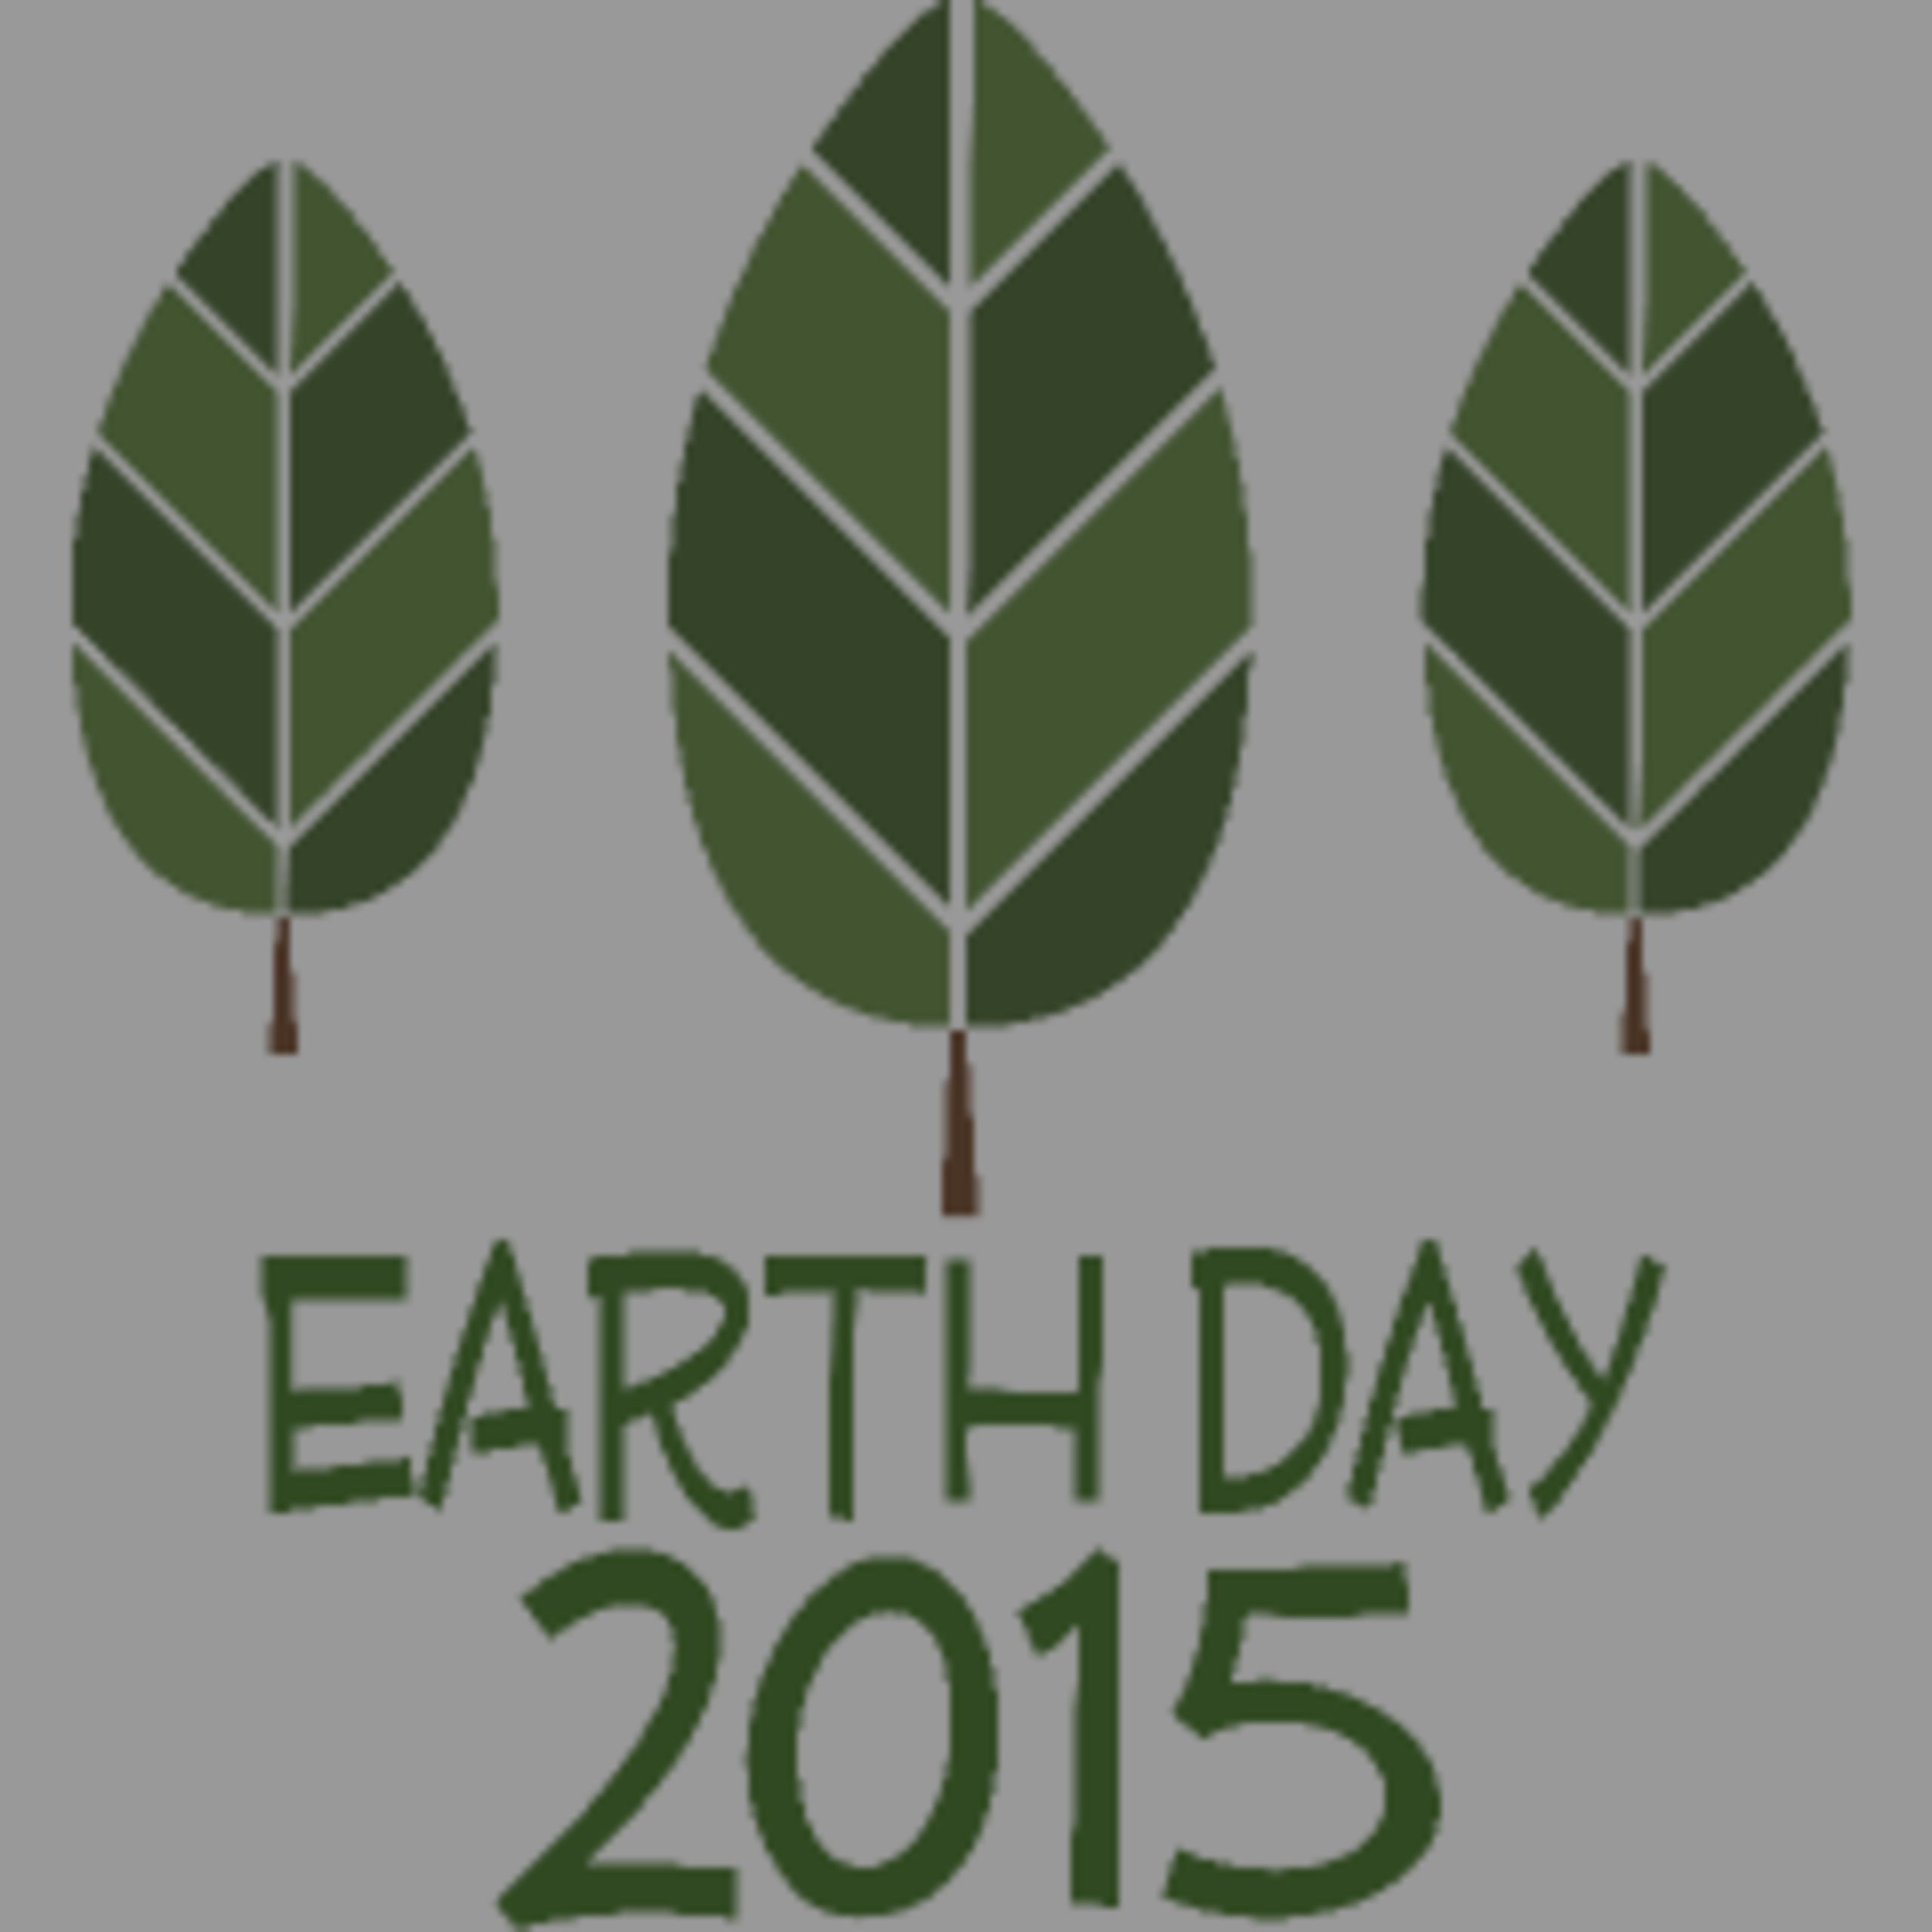 Things To Do On Earth Day in the Citrus Valley